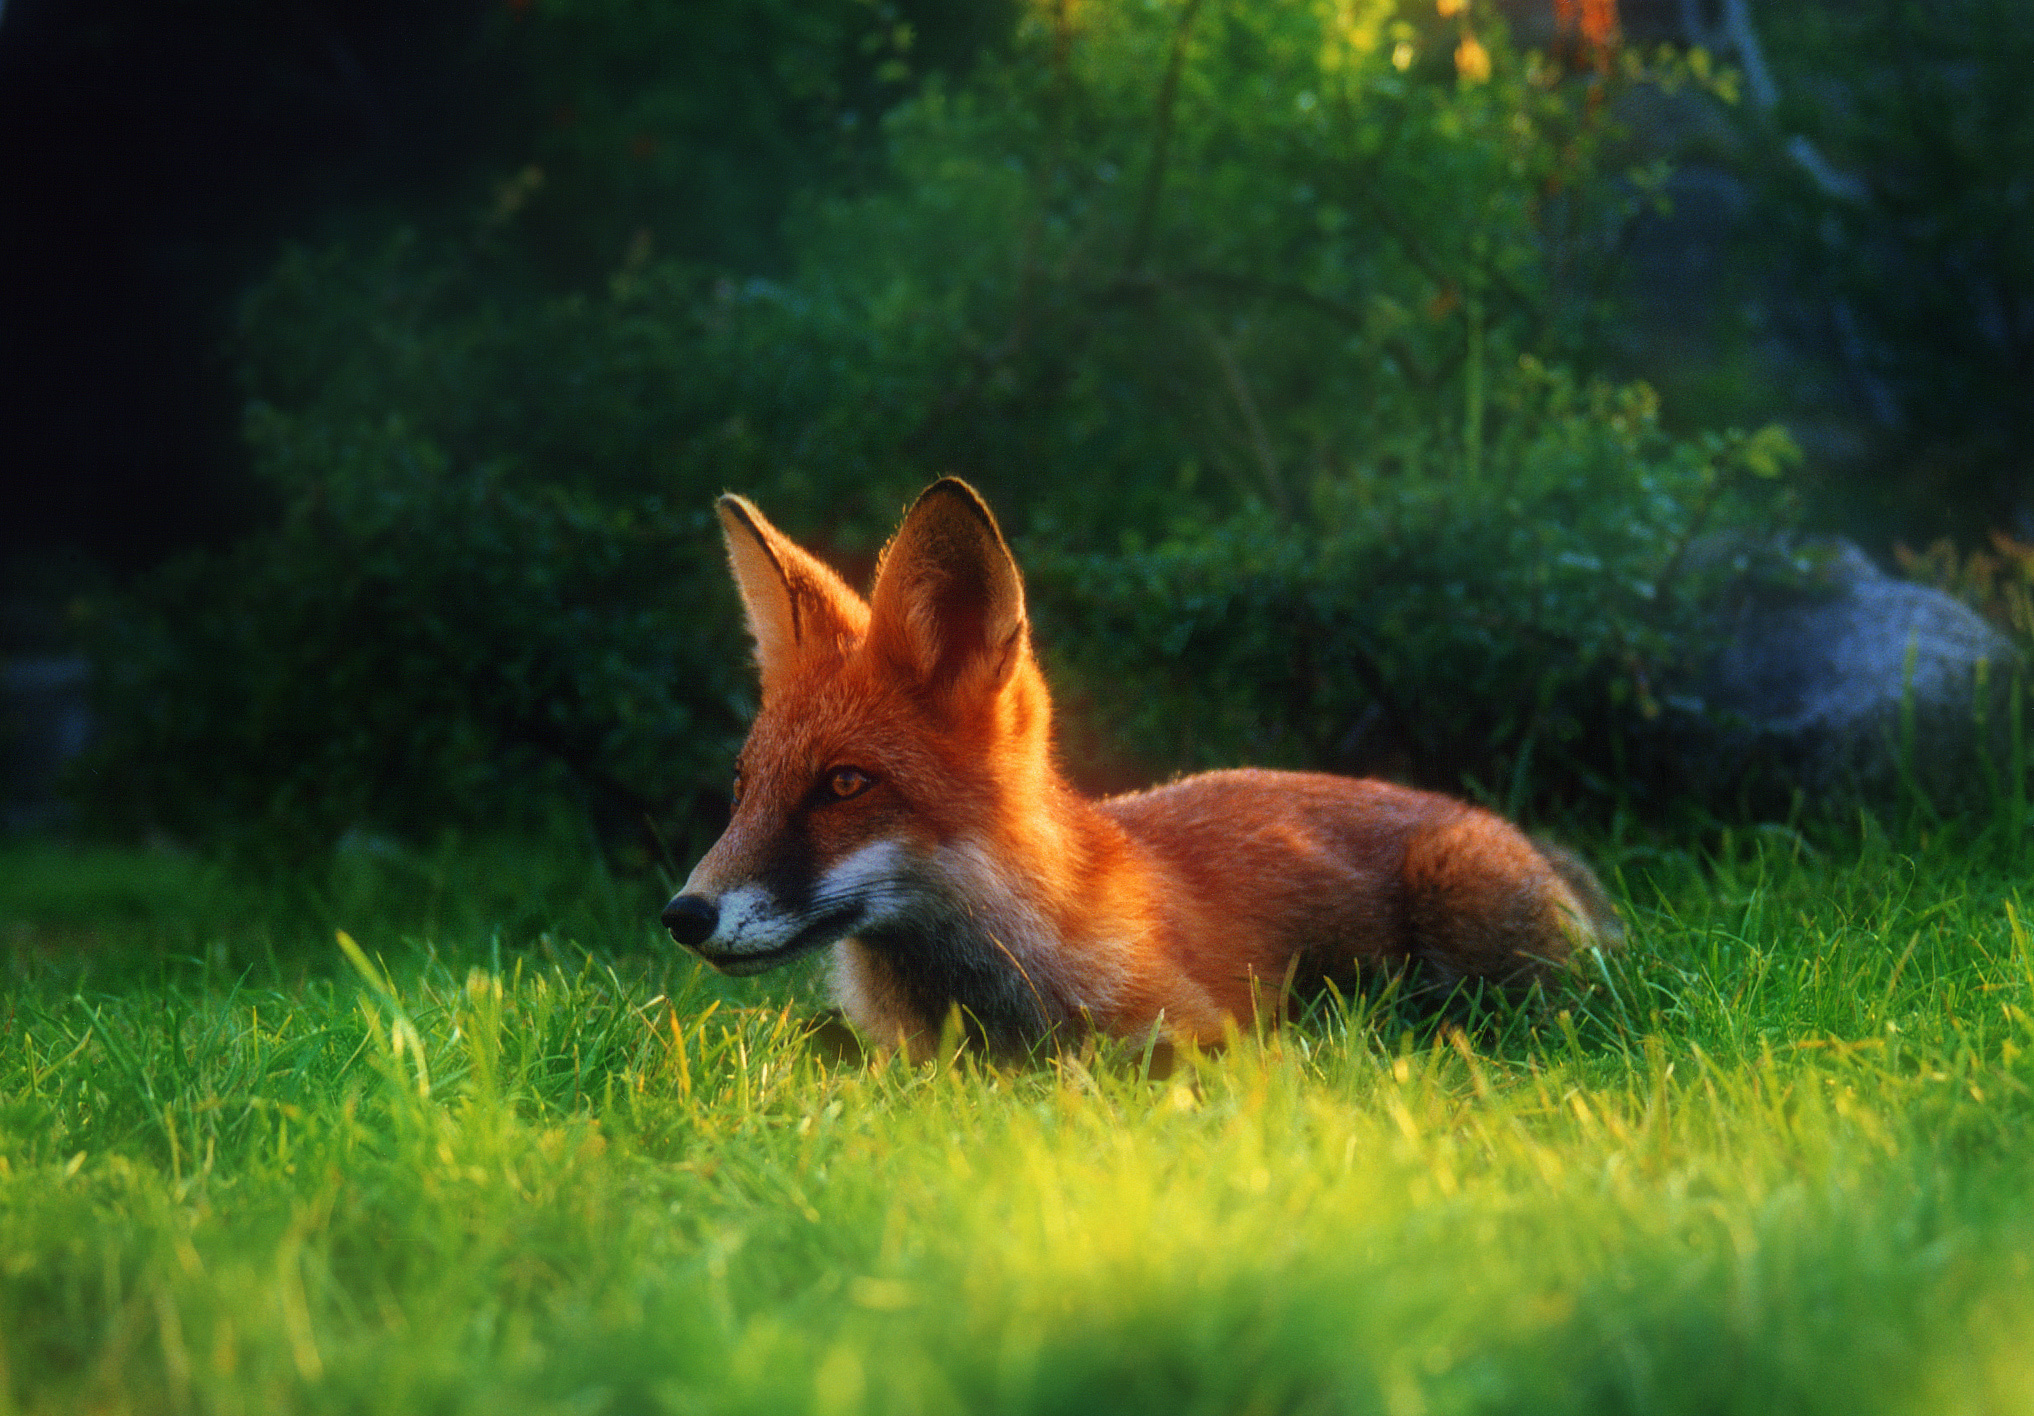 Red fox on hunting wallpapers and images - wallpapers, pictures ...